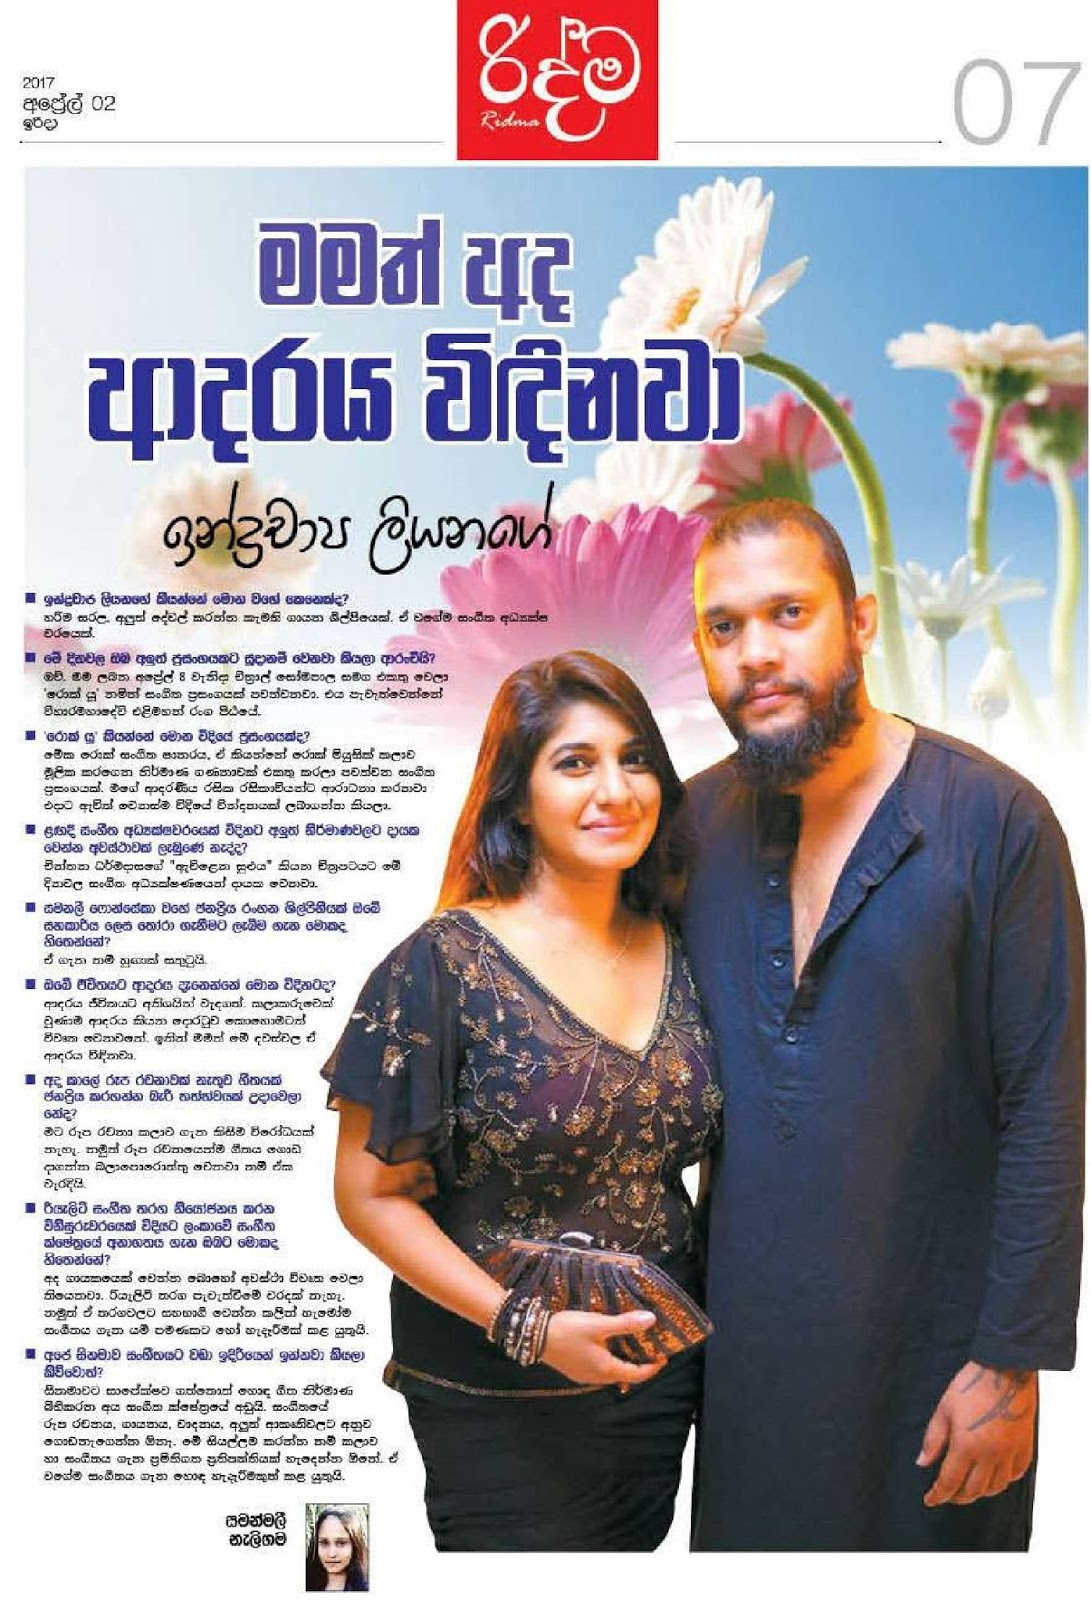 Samanali Fonseka And Indrachapa Liyanage Marriage Secret Exposed